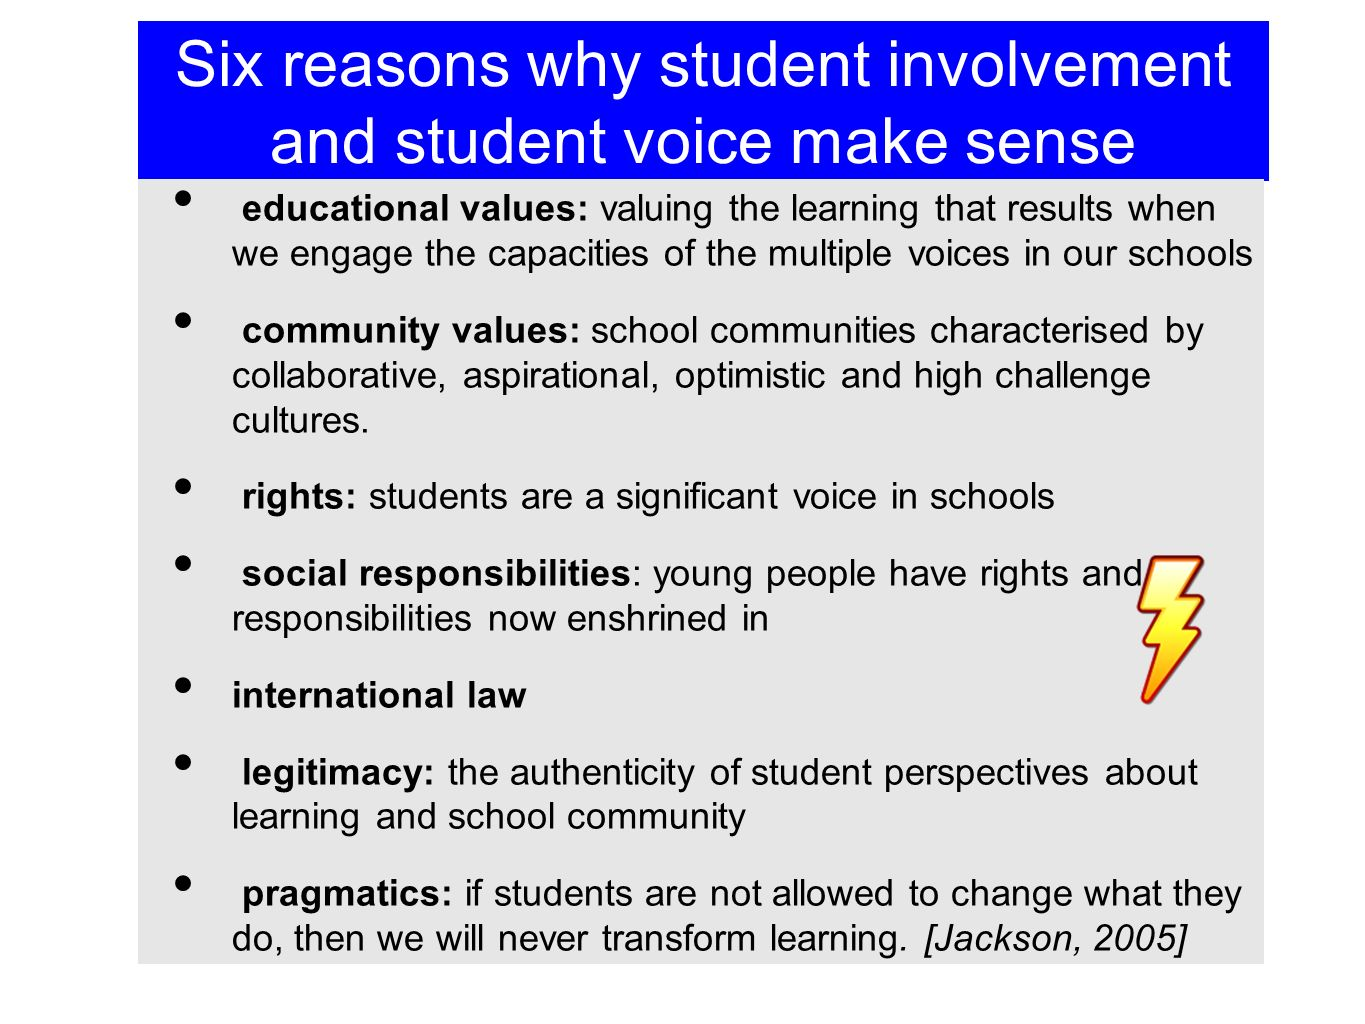 Six reasons why student involvement and student voice make sense educational values: valuing the learning that results when we engage the capacities o